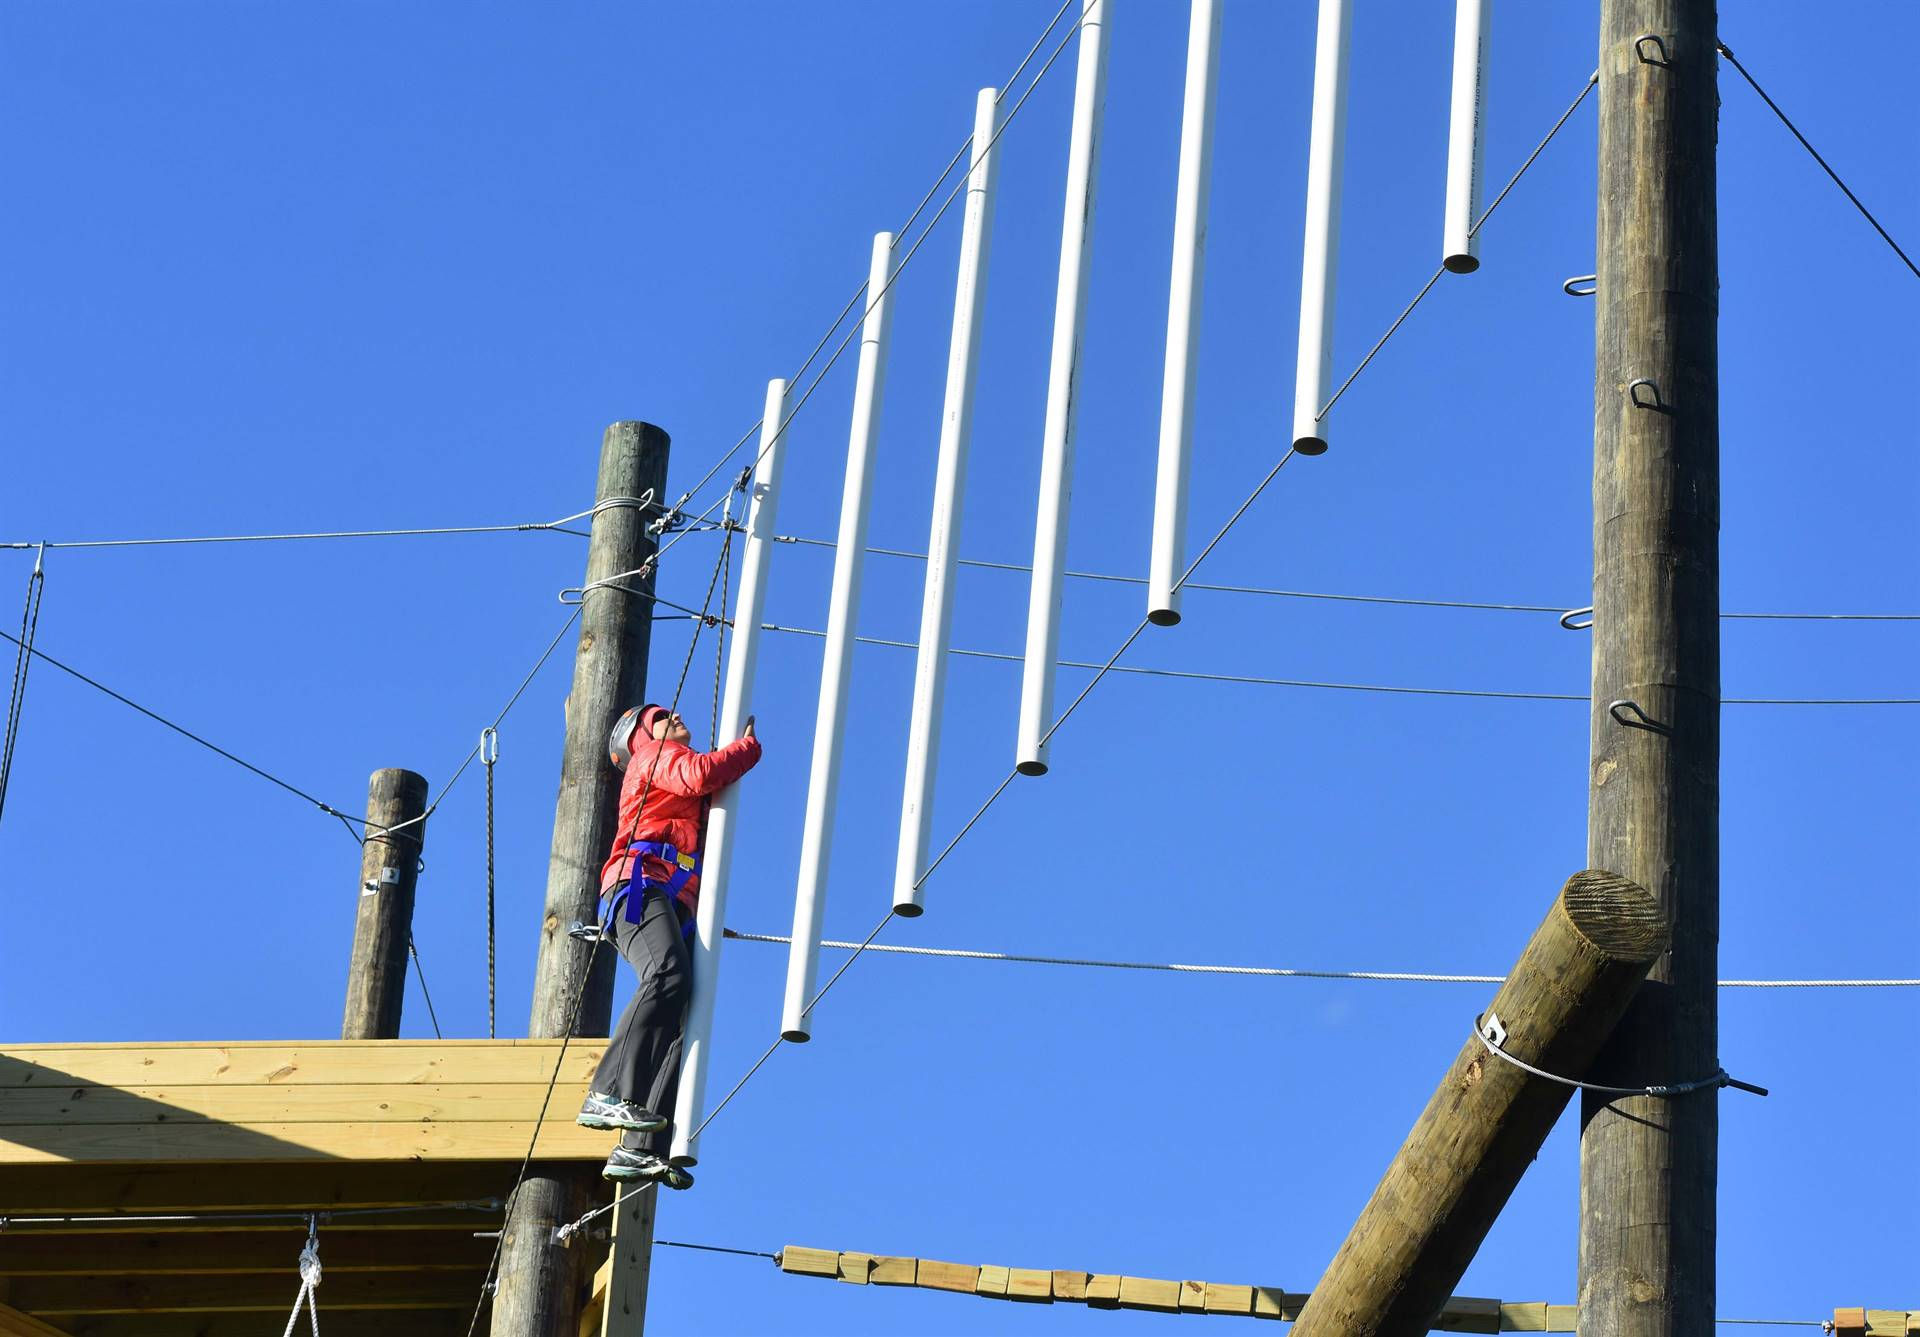 Climbing with poles on rope